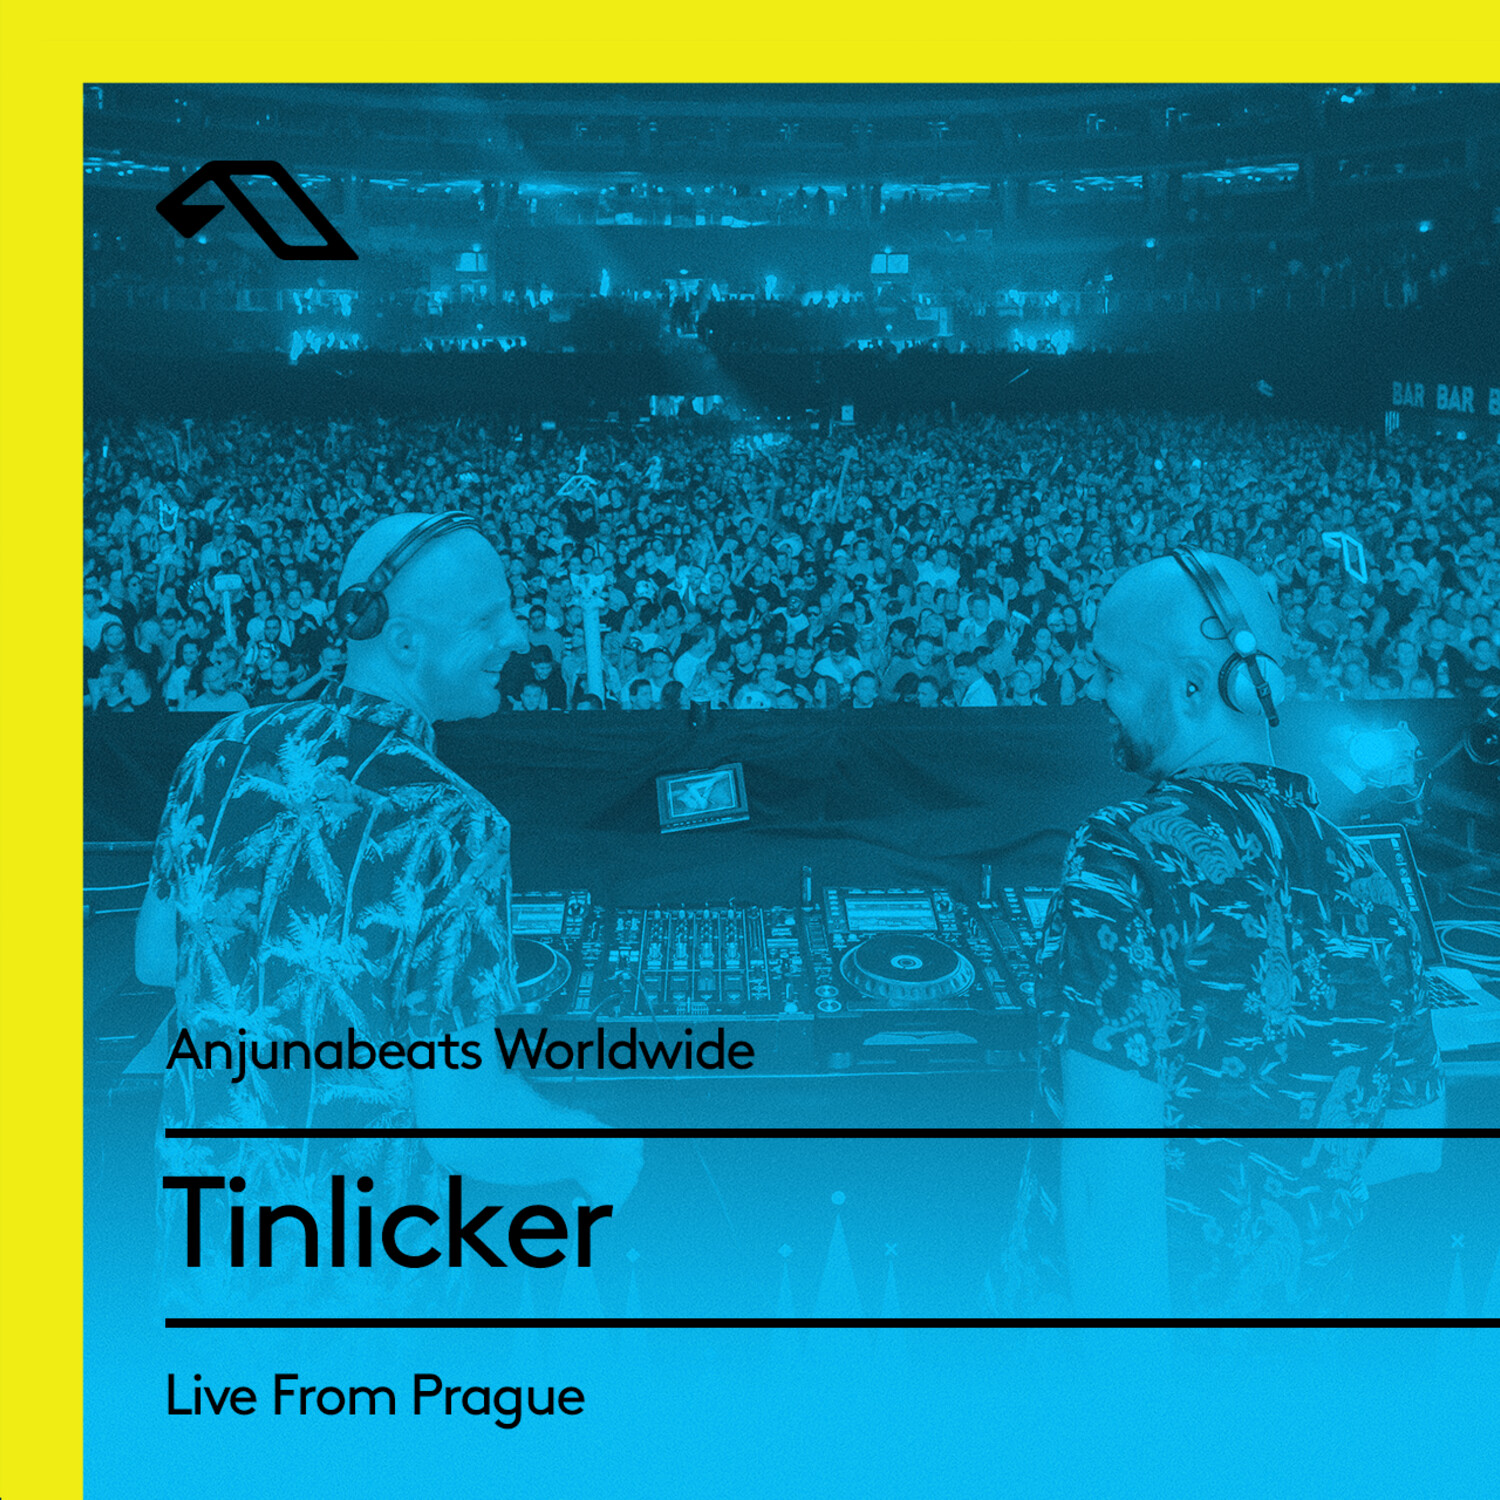 Anjunabeats — Anjunabeats Worldwide with Tinlicker (Live From Prague)